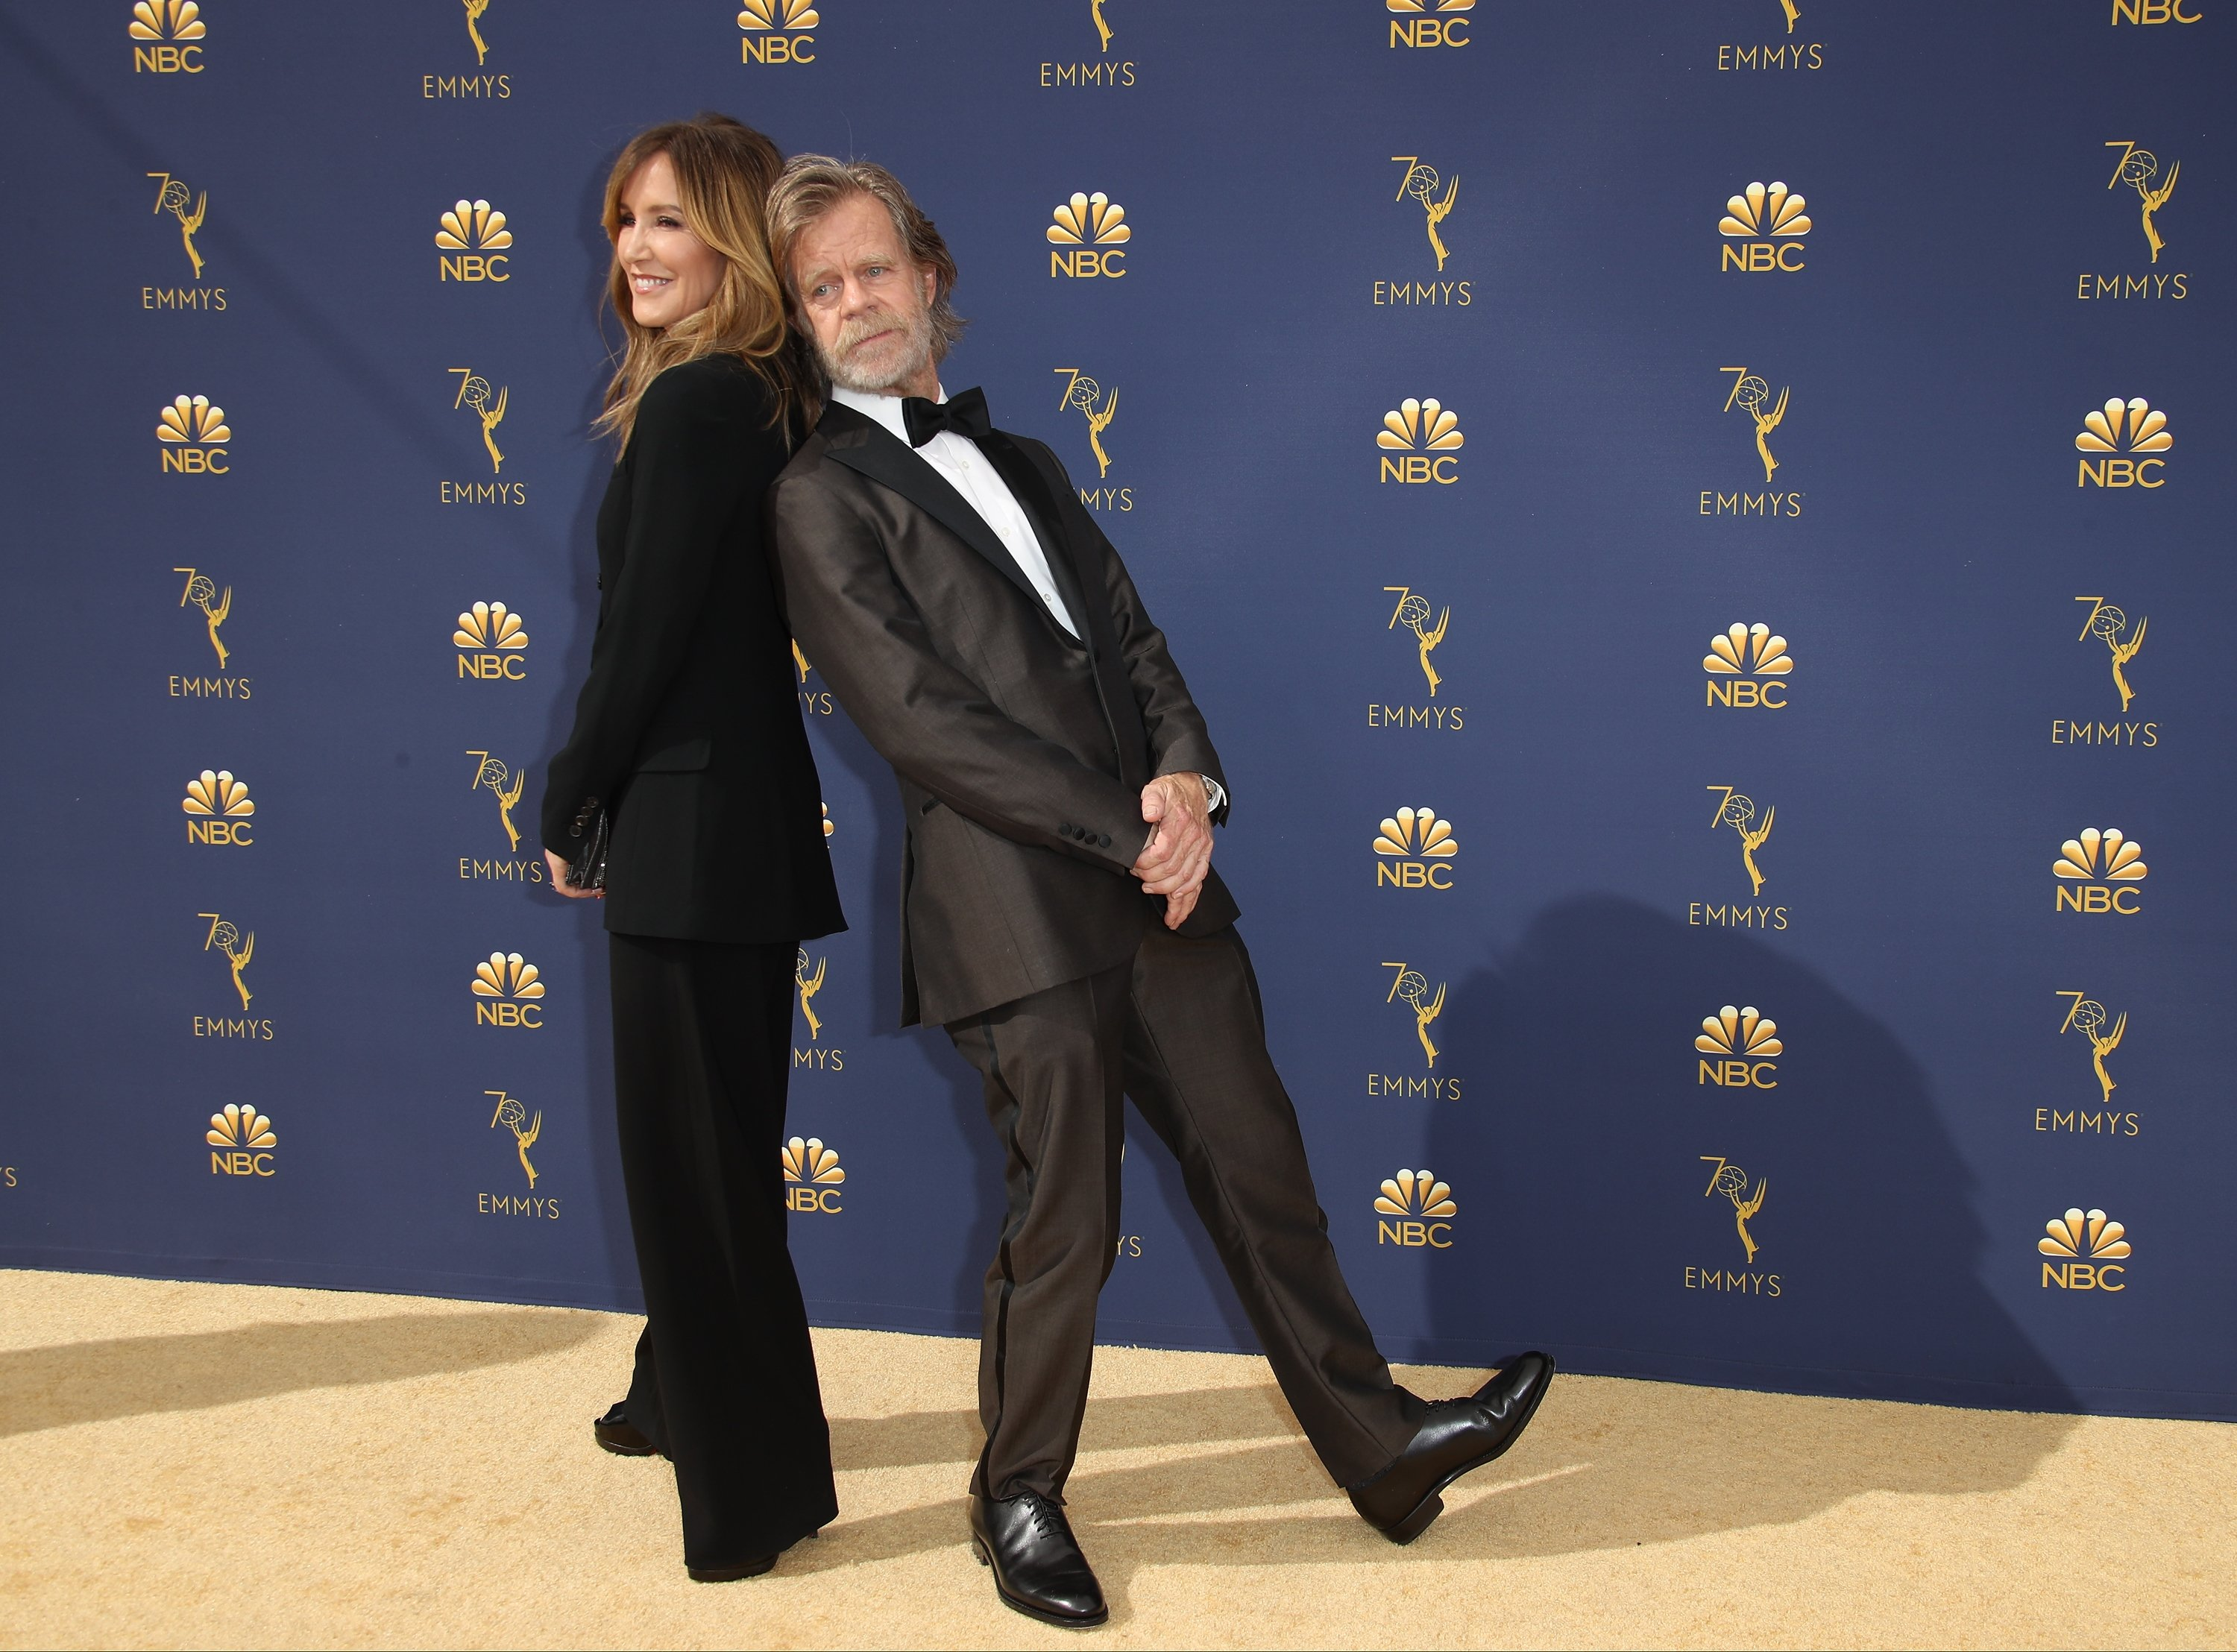 Felicity Huffman and William H Macy attend the 70th Emmy Awards in Los Angeles on September 17, 2018 | Photo: Getty Images